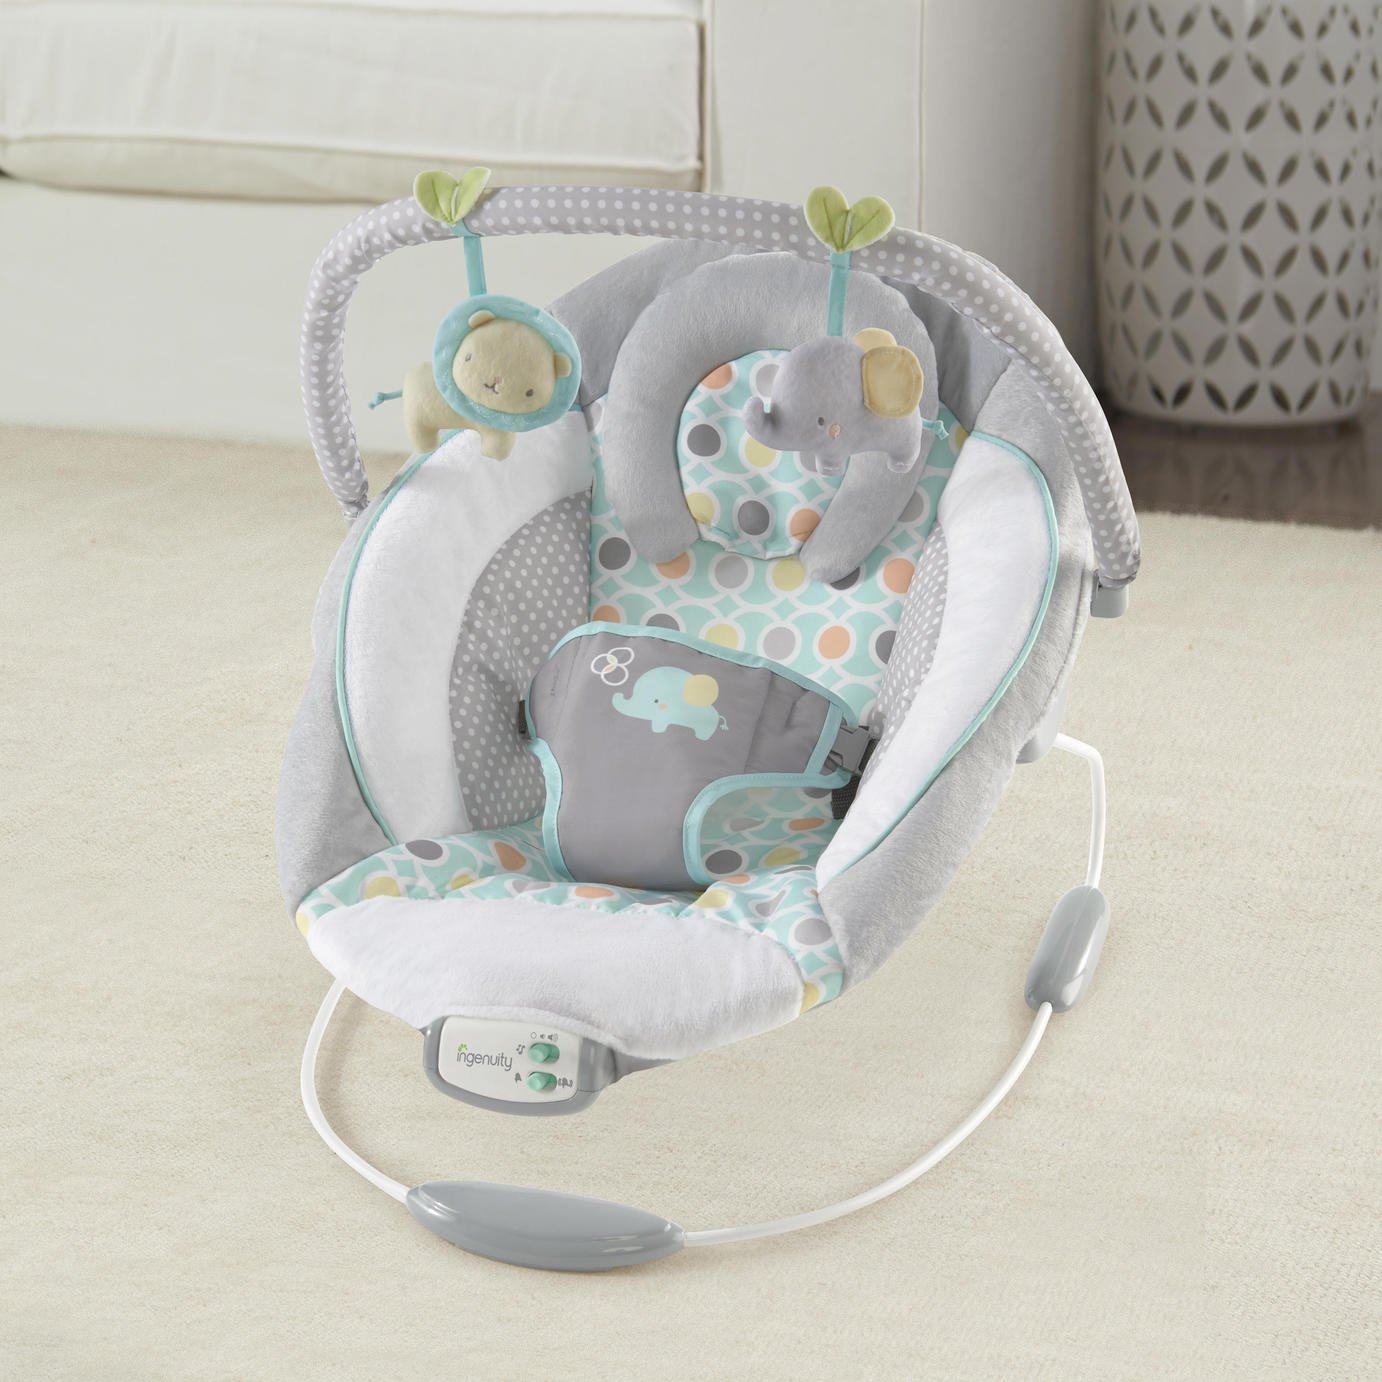 Ingenuity Morrison Baby Bouncer Best Price, Cheapest Prices